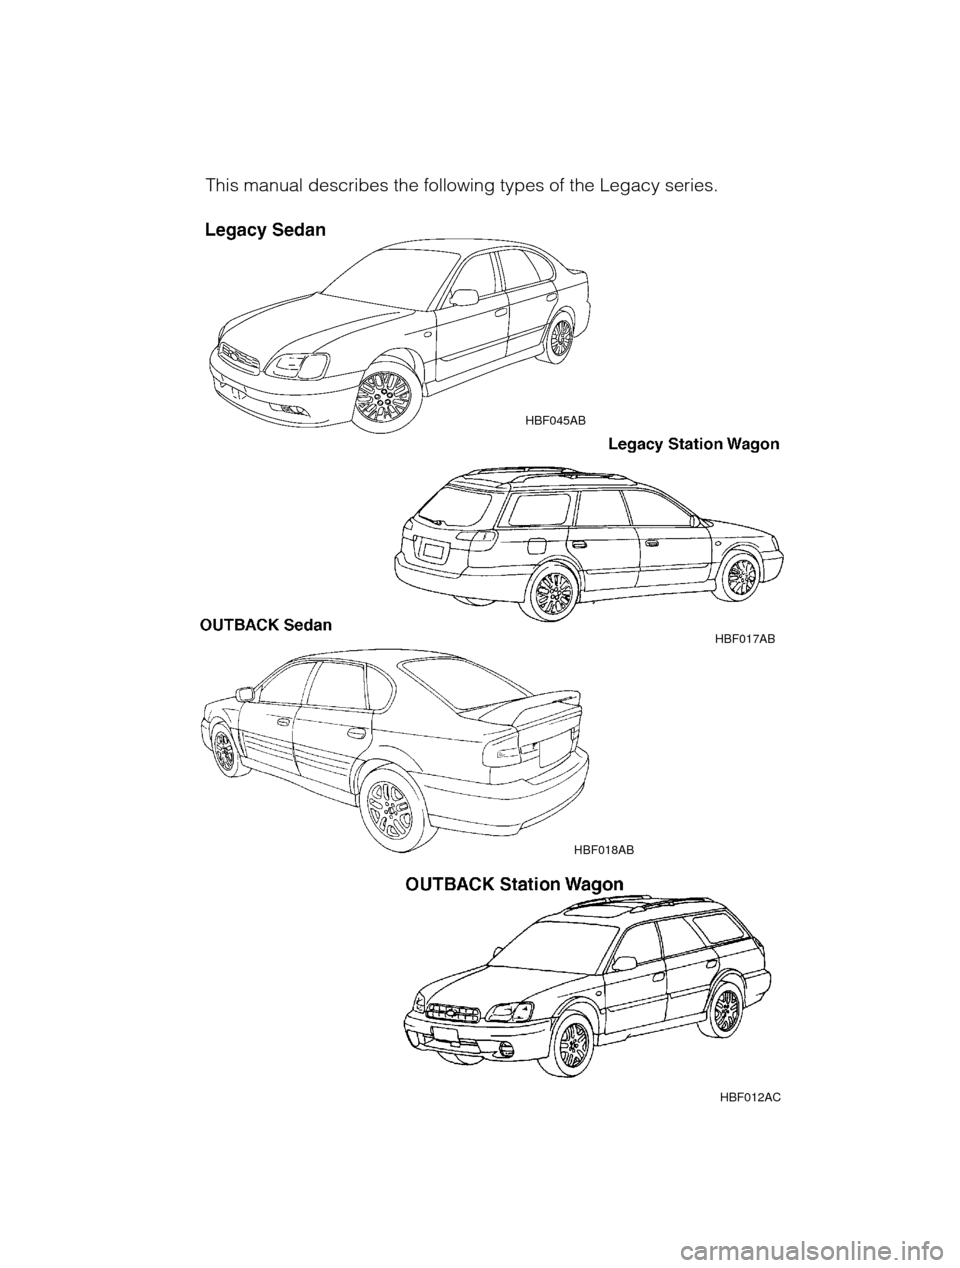 SUBARU OUTBACK 2003 3.G Owners Manual